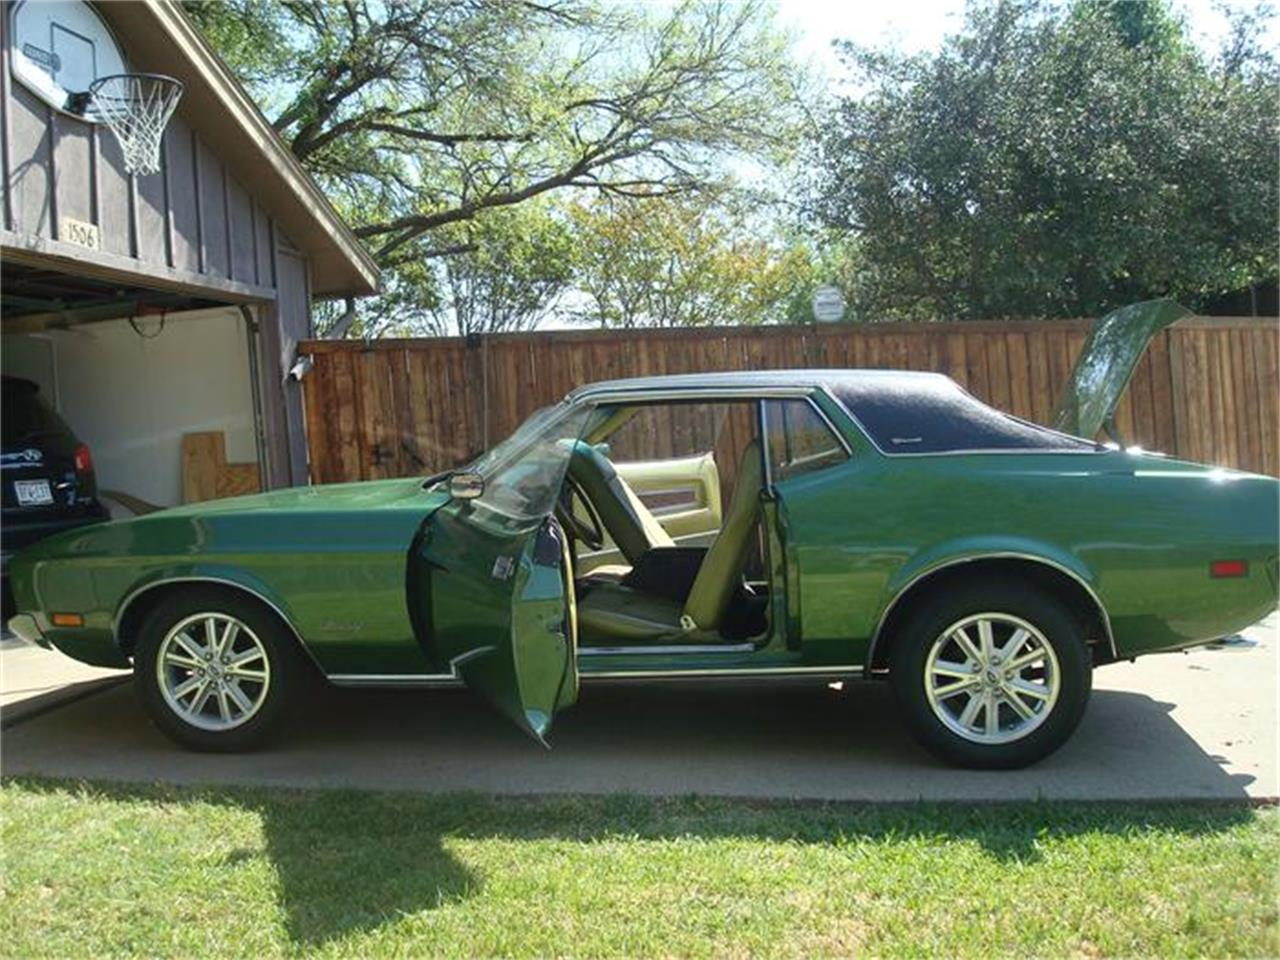 Large Picture of Classic '73 Ford Mustang - $10,500.00 - 4A3A